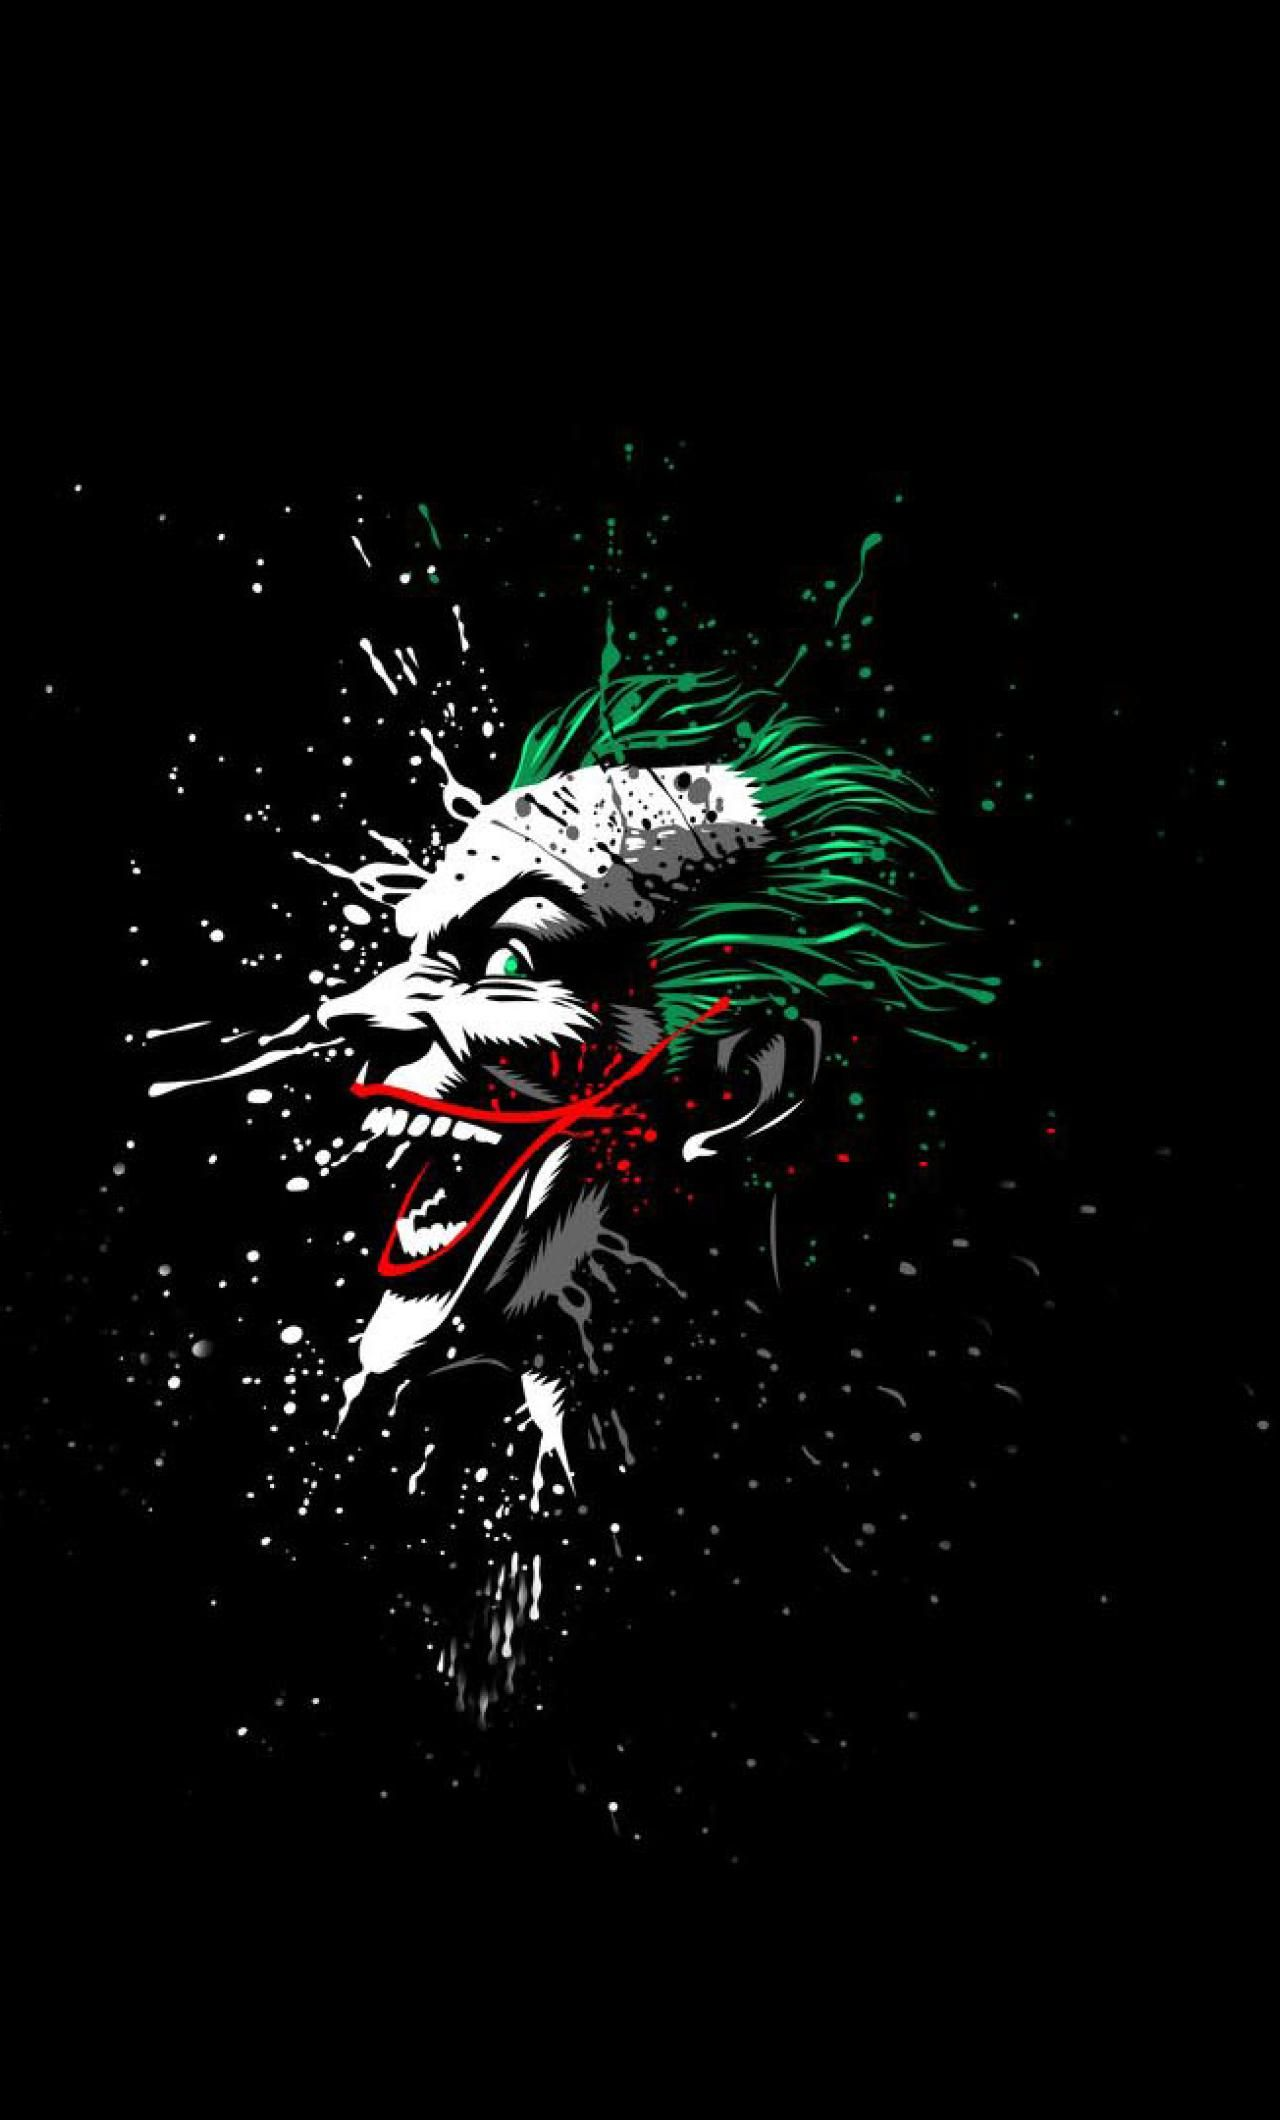 Joker Hd Wallpapers For Iphone 6 32 Image Collections Of Wallpapers Joker Artwork Joker Hd Wallpaper Joker Wallpapers